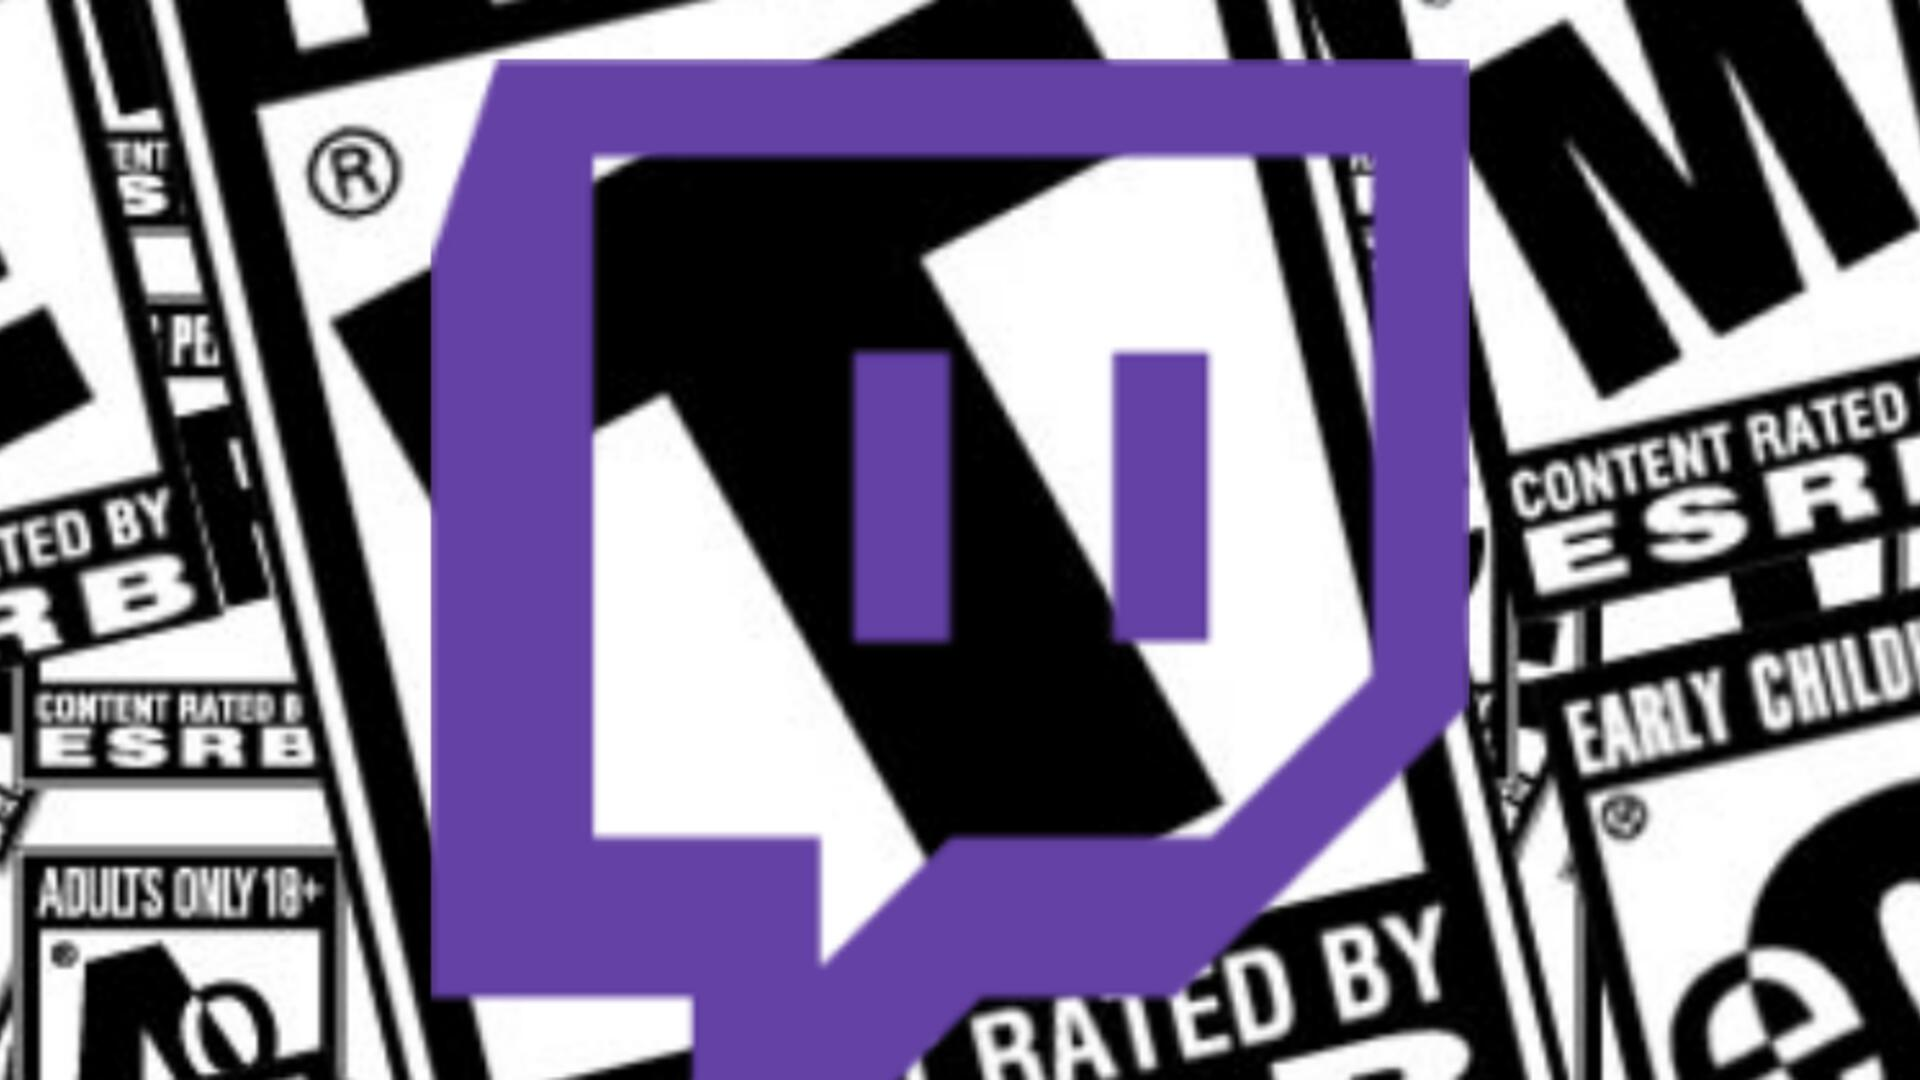 Twitch Bans Adult-Only Games, but Provides No Clarity on Mature Titles